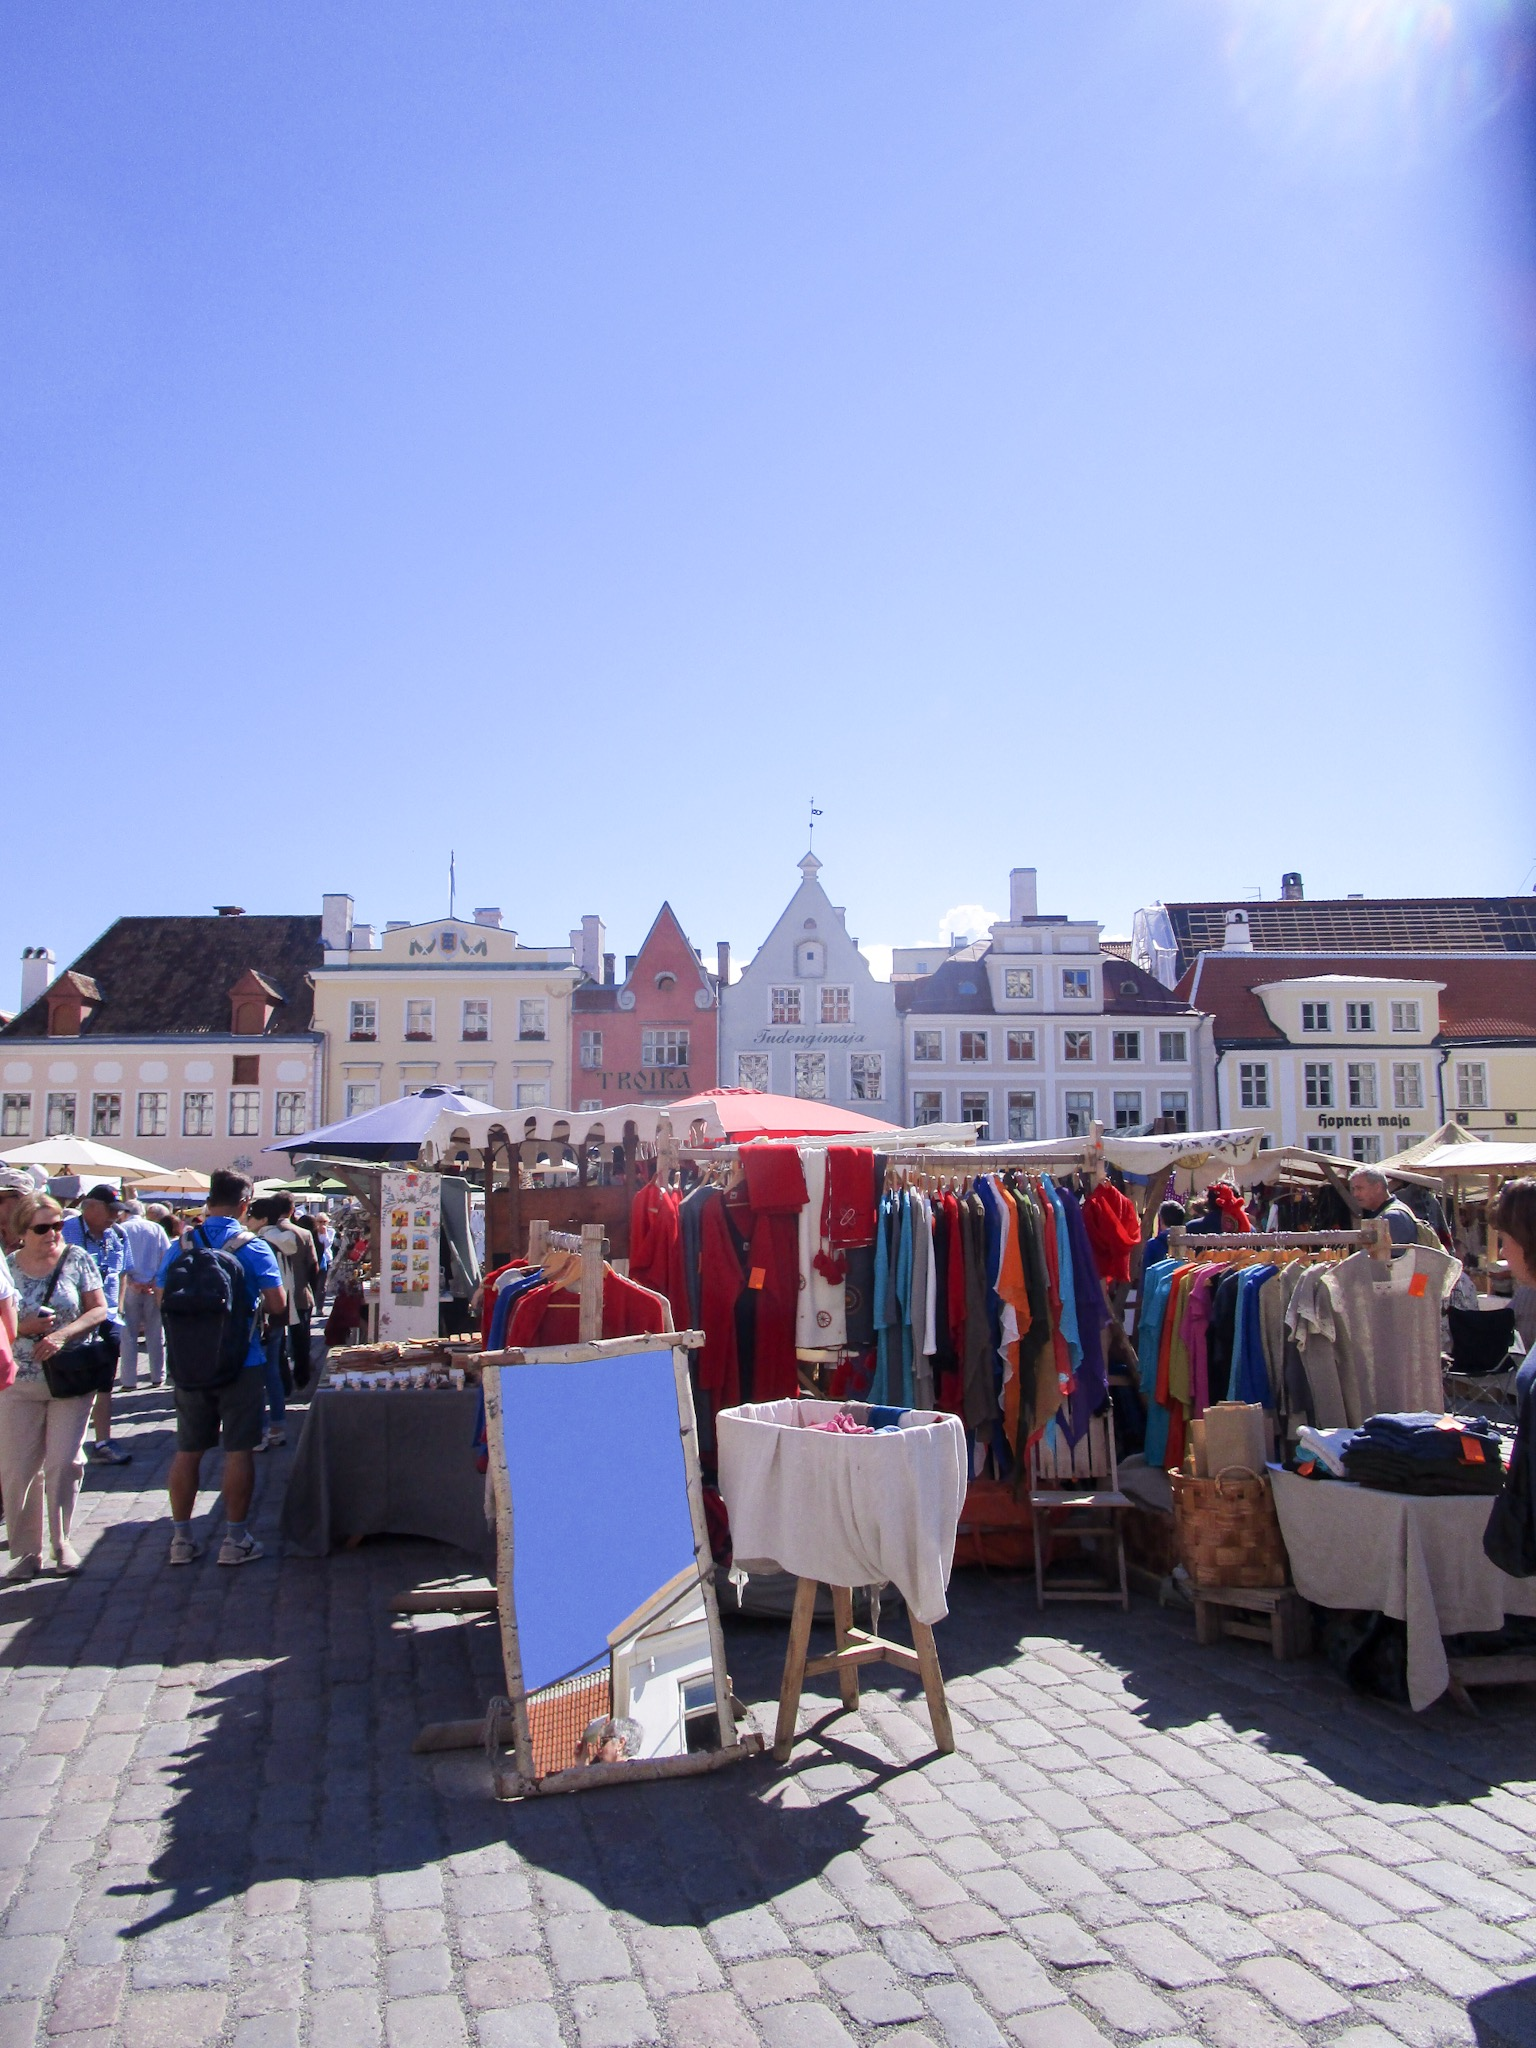 Old town Tallinn marketplace